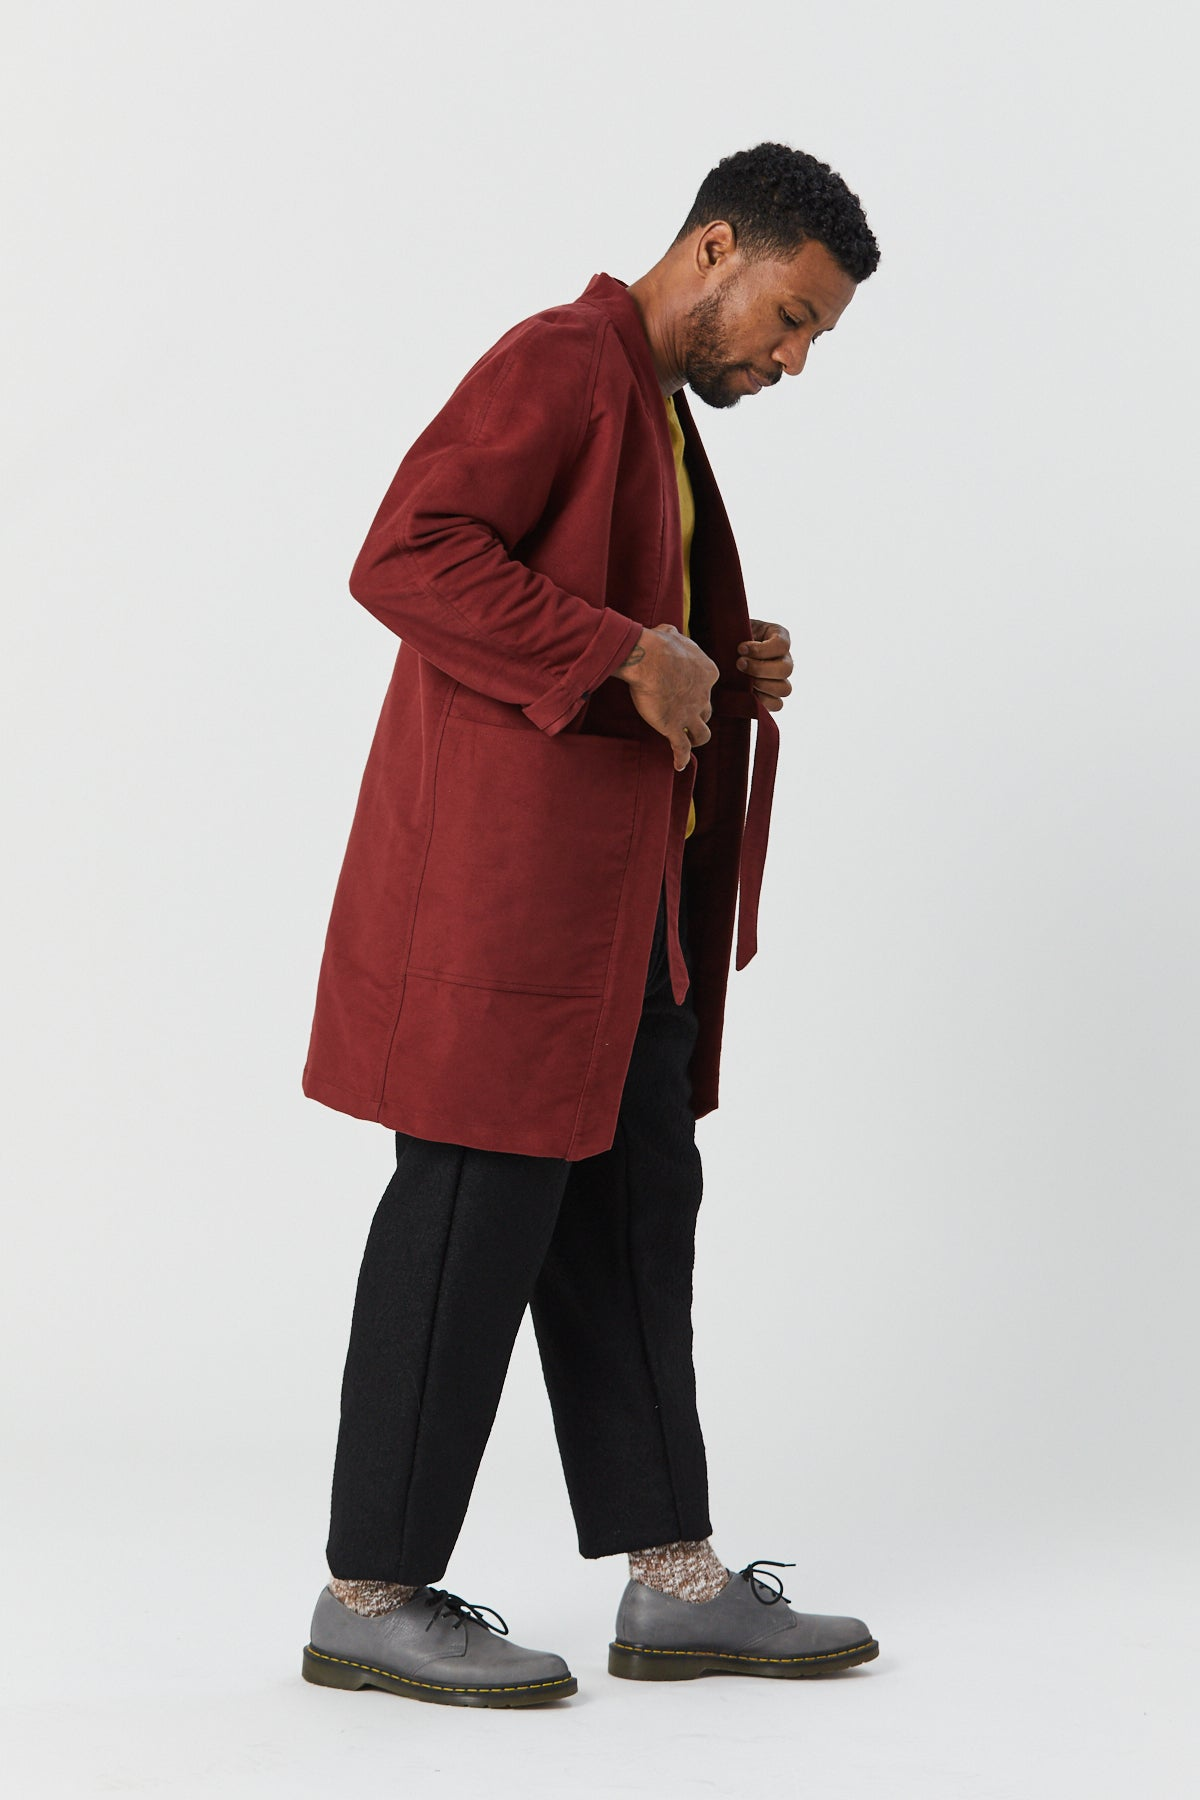 WEST VILLAGE ROBE IN BRICK - Fortune Goods